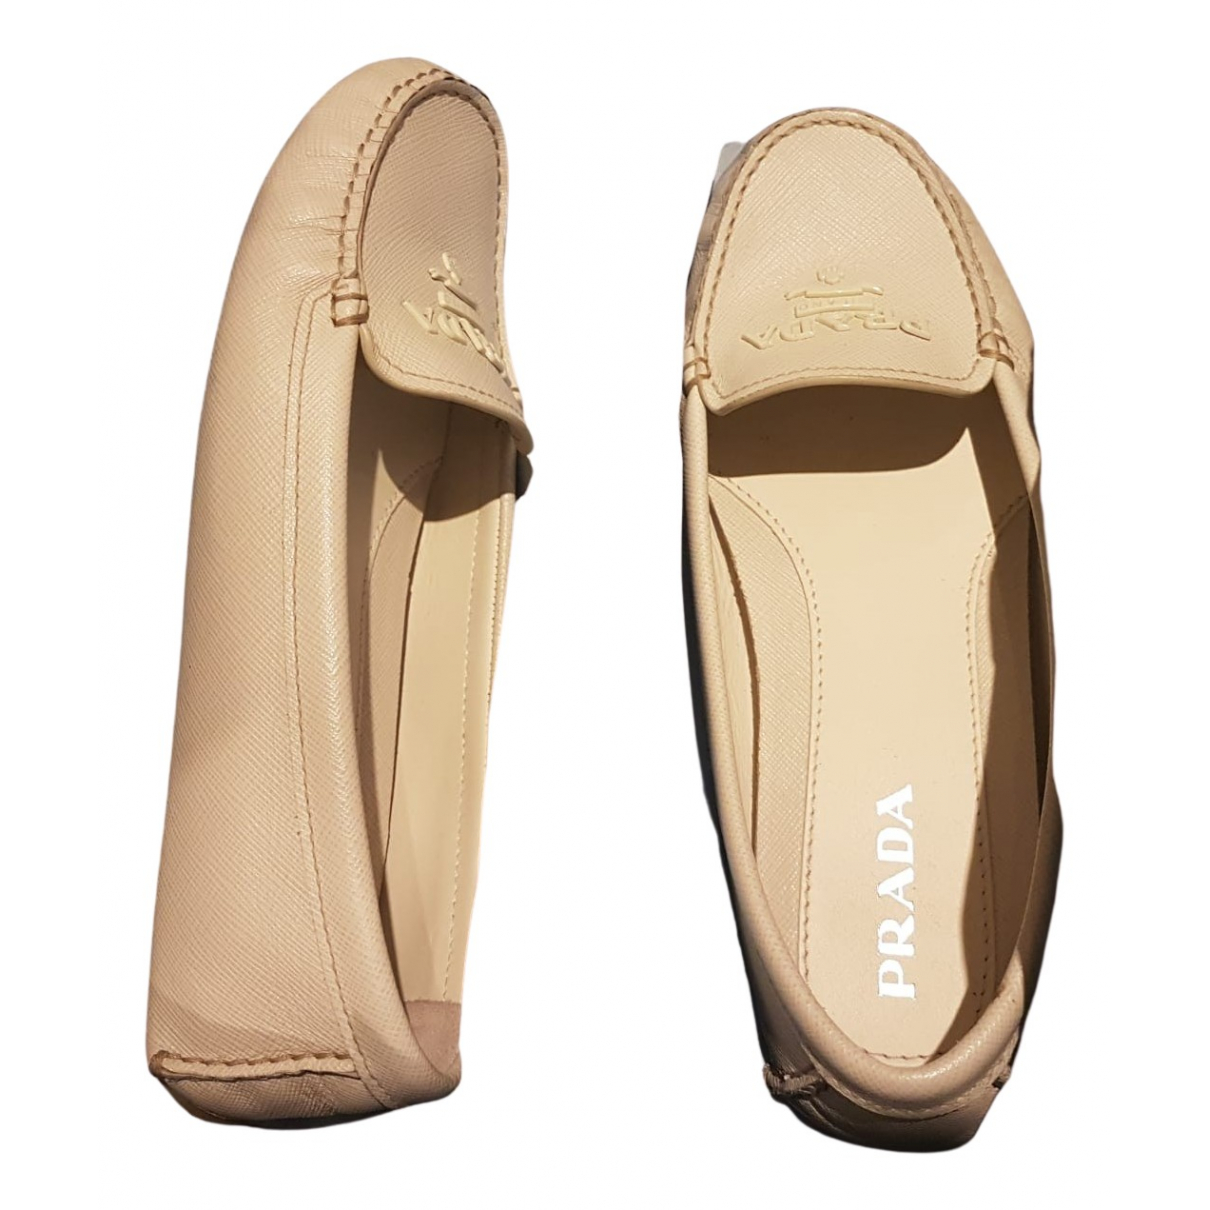 Prada N Beige Leather Flats for Women 37 EU